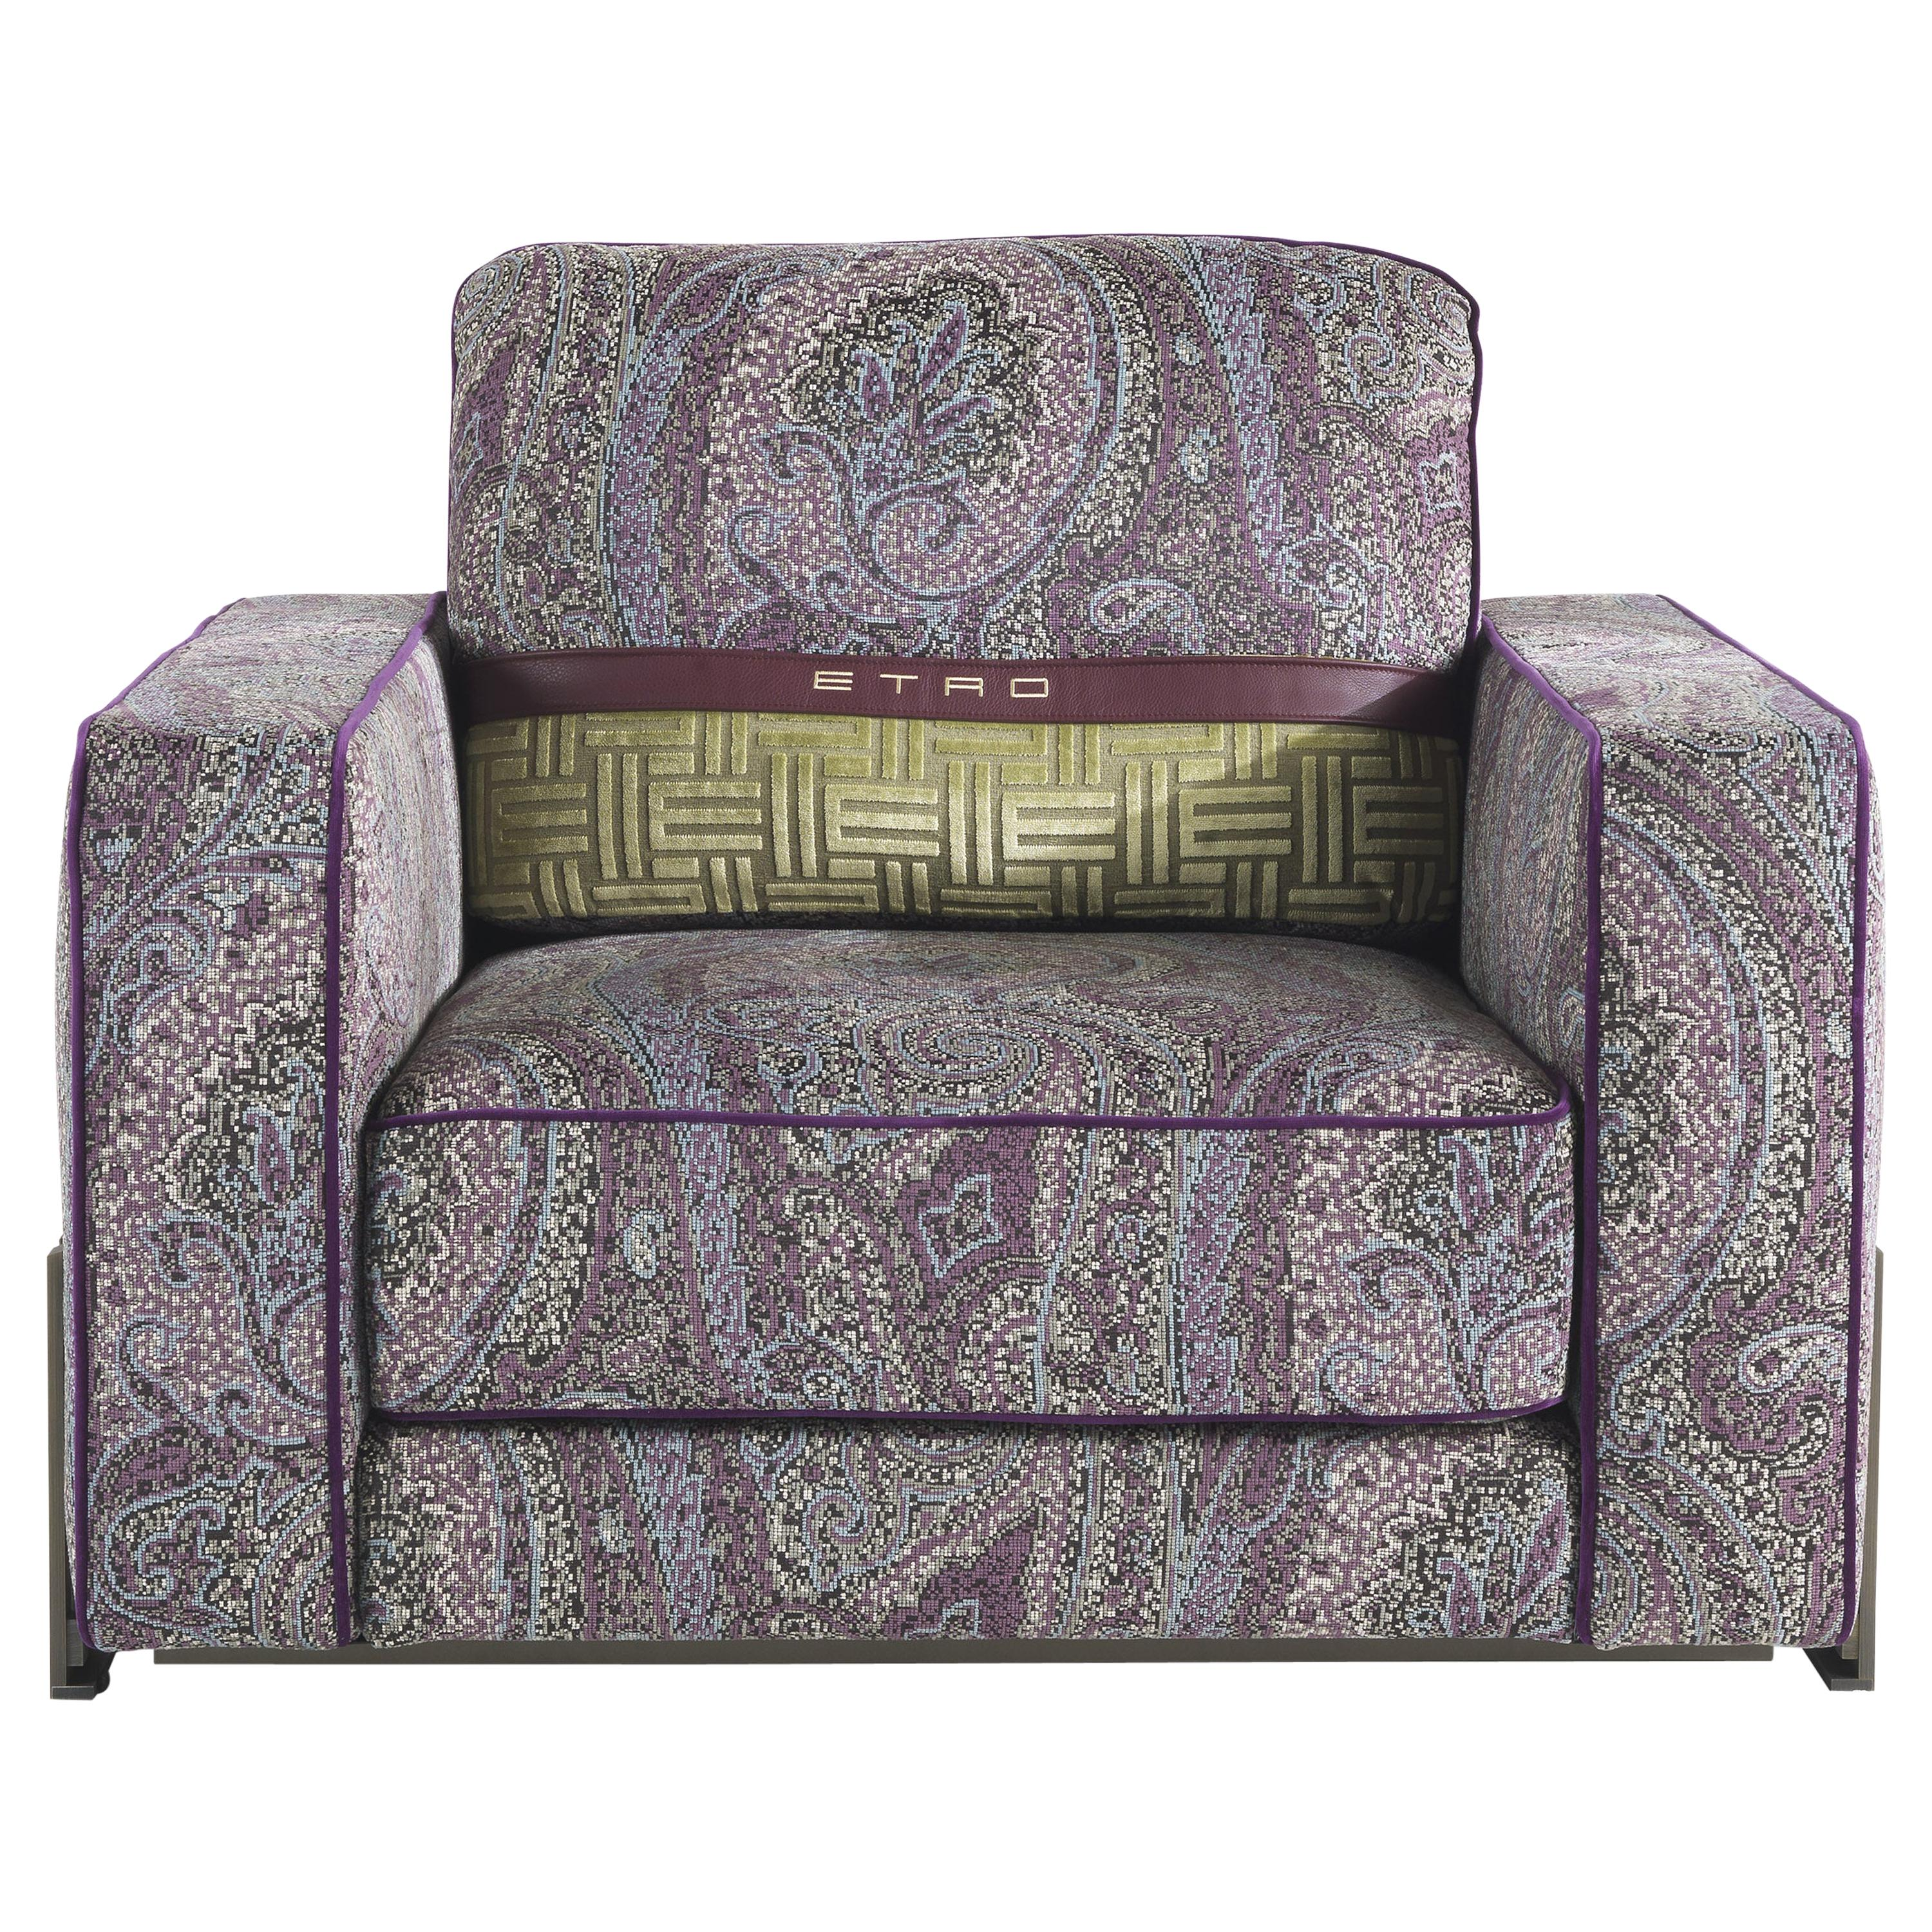 Etro Home Interiors Klee.2 Armchair in Metal and Fabric